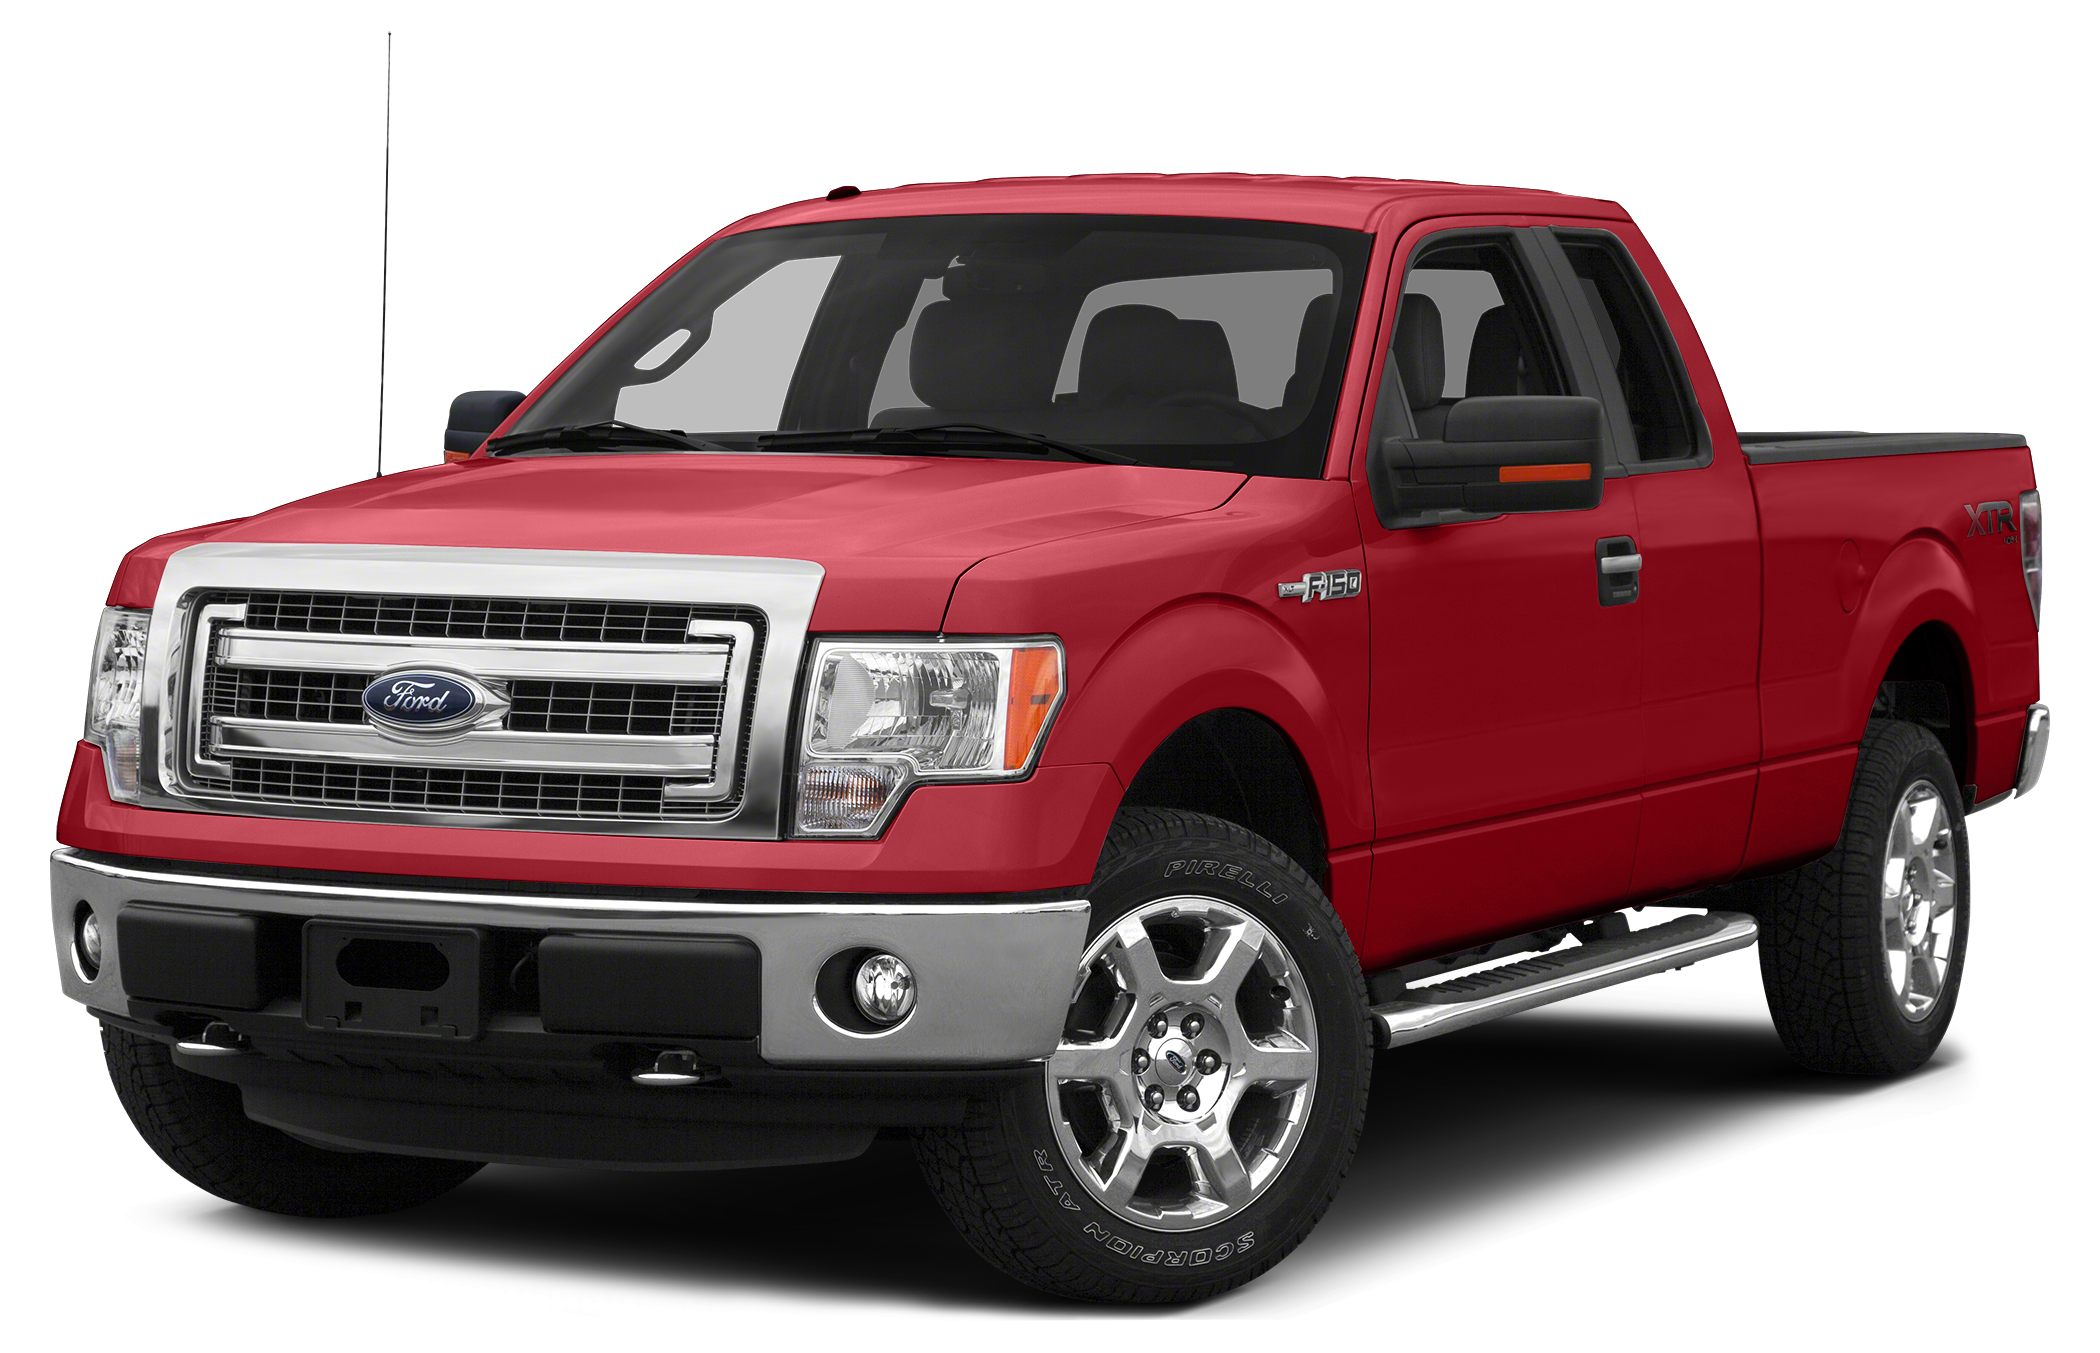 2014 Ford F-150 XLT This super F-150 is the smooth Truck youve been searching for Gas miser